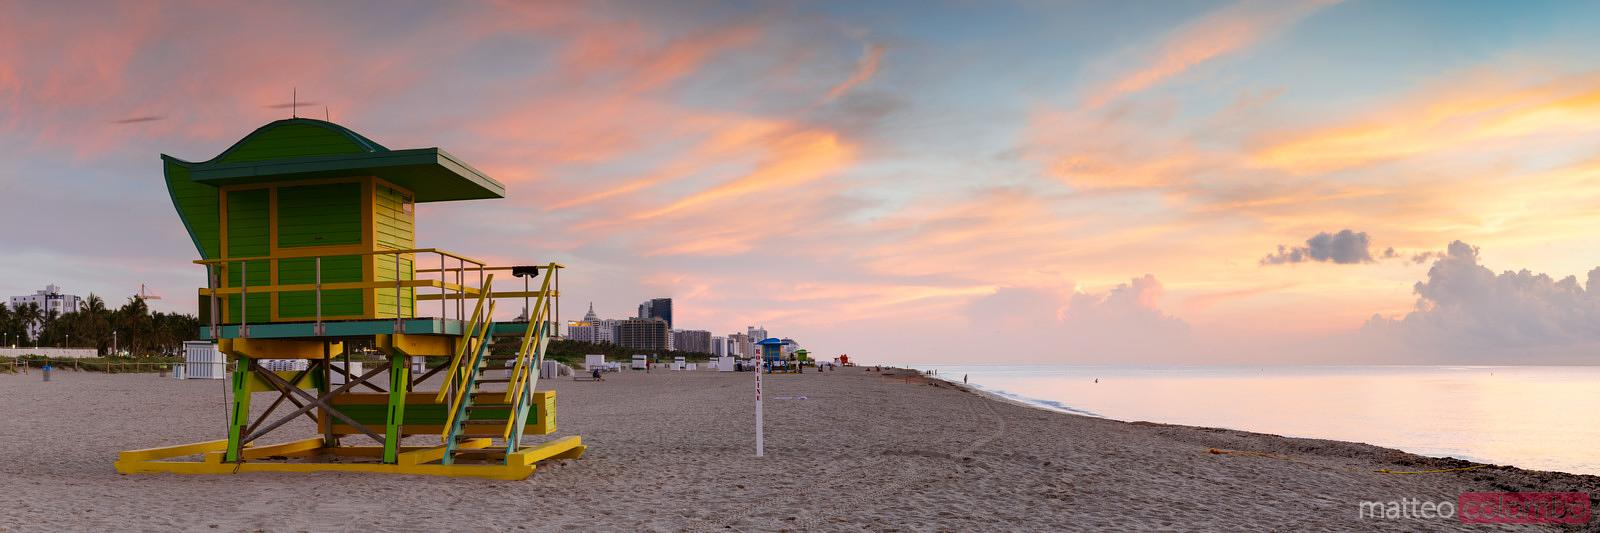 Panoramic of South beach at sunrise, Miami, Florida, USA